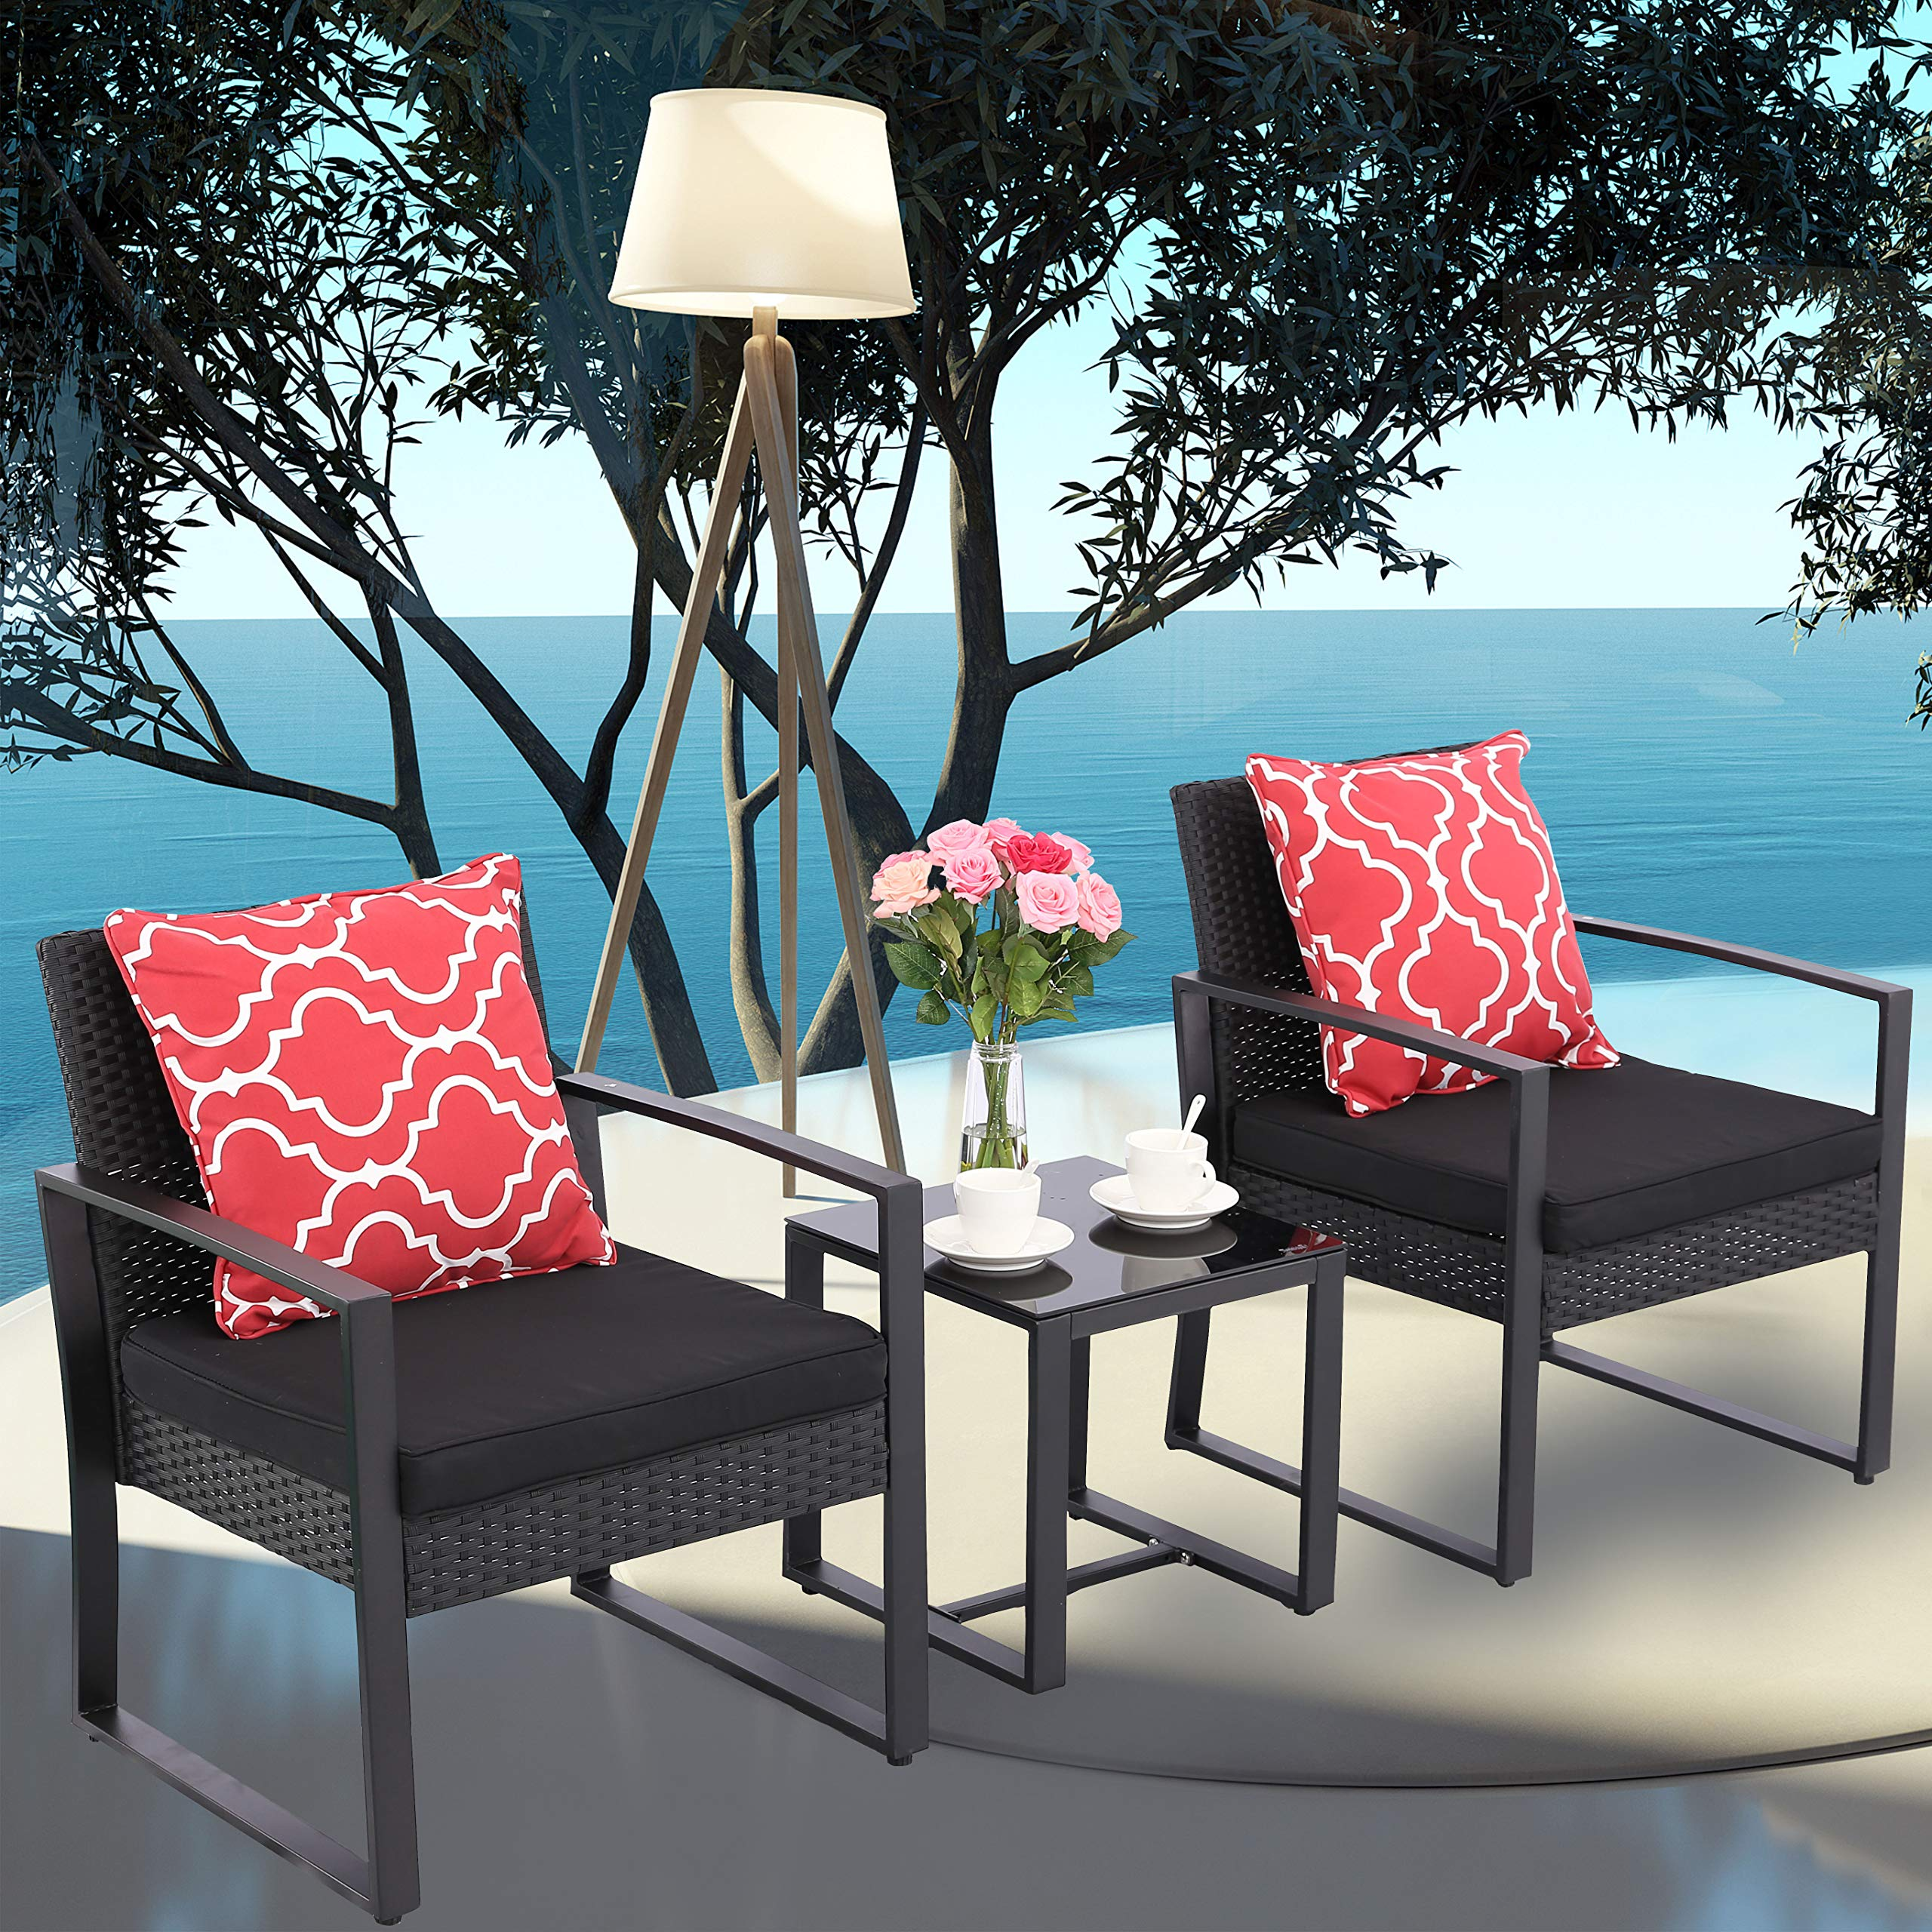 Do4U 3 Pieces Patio Set Outdoor Wicker Patio Furniture Sets Modern Bistro Set Rattan Chairs with Coffee Table Porch Backyard Pool Garden Chairs Set (631-BLK-BLK)